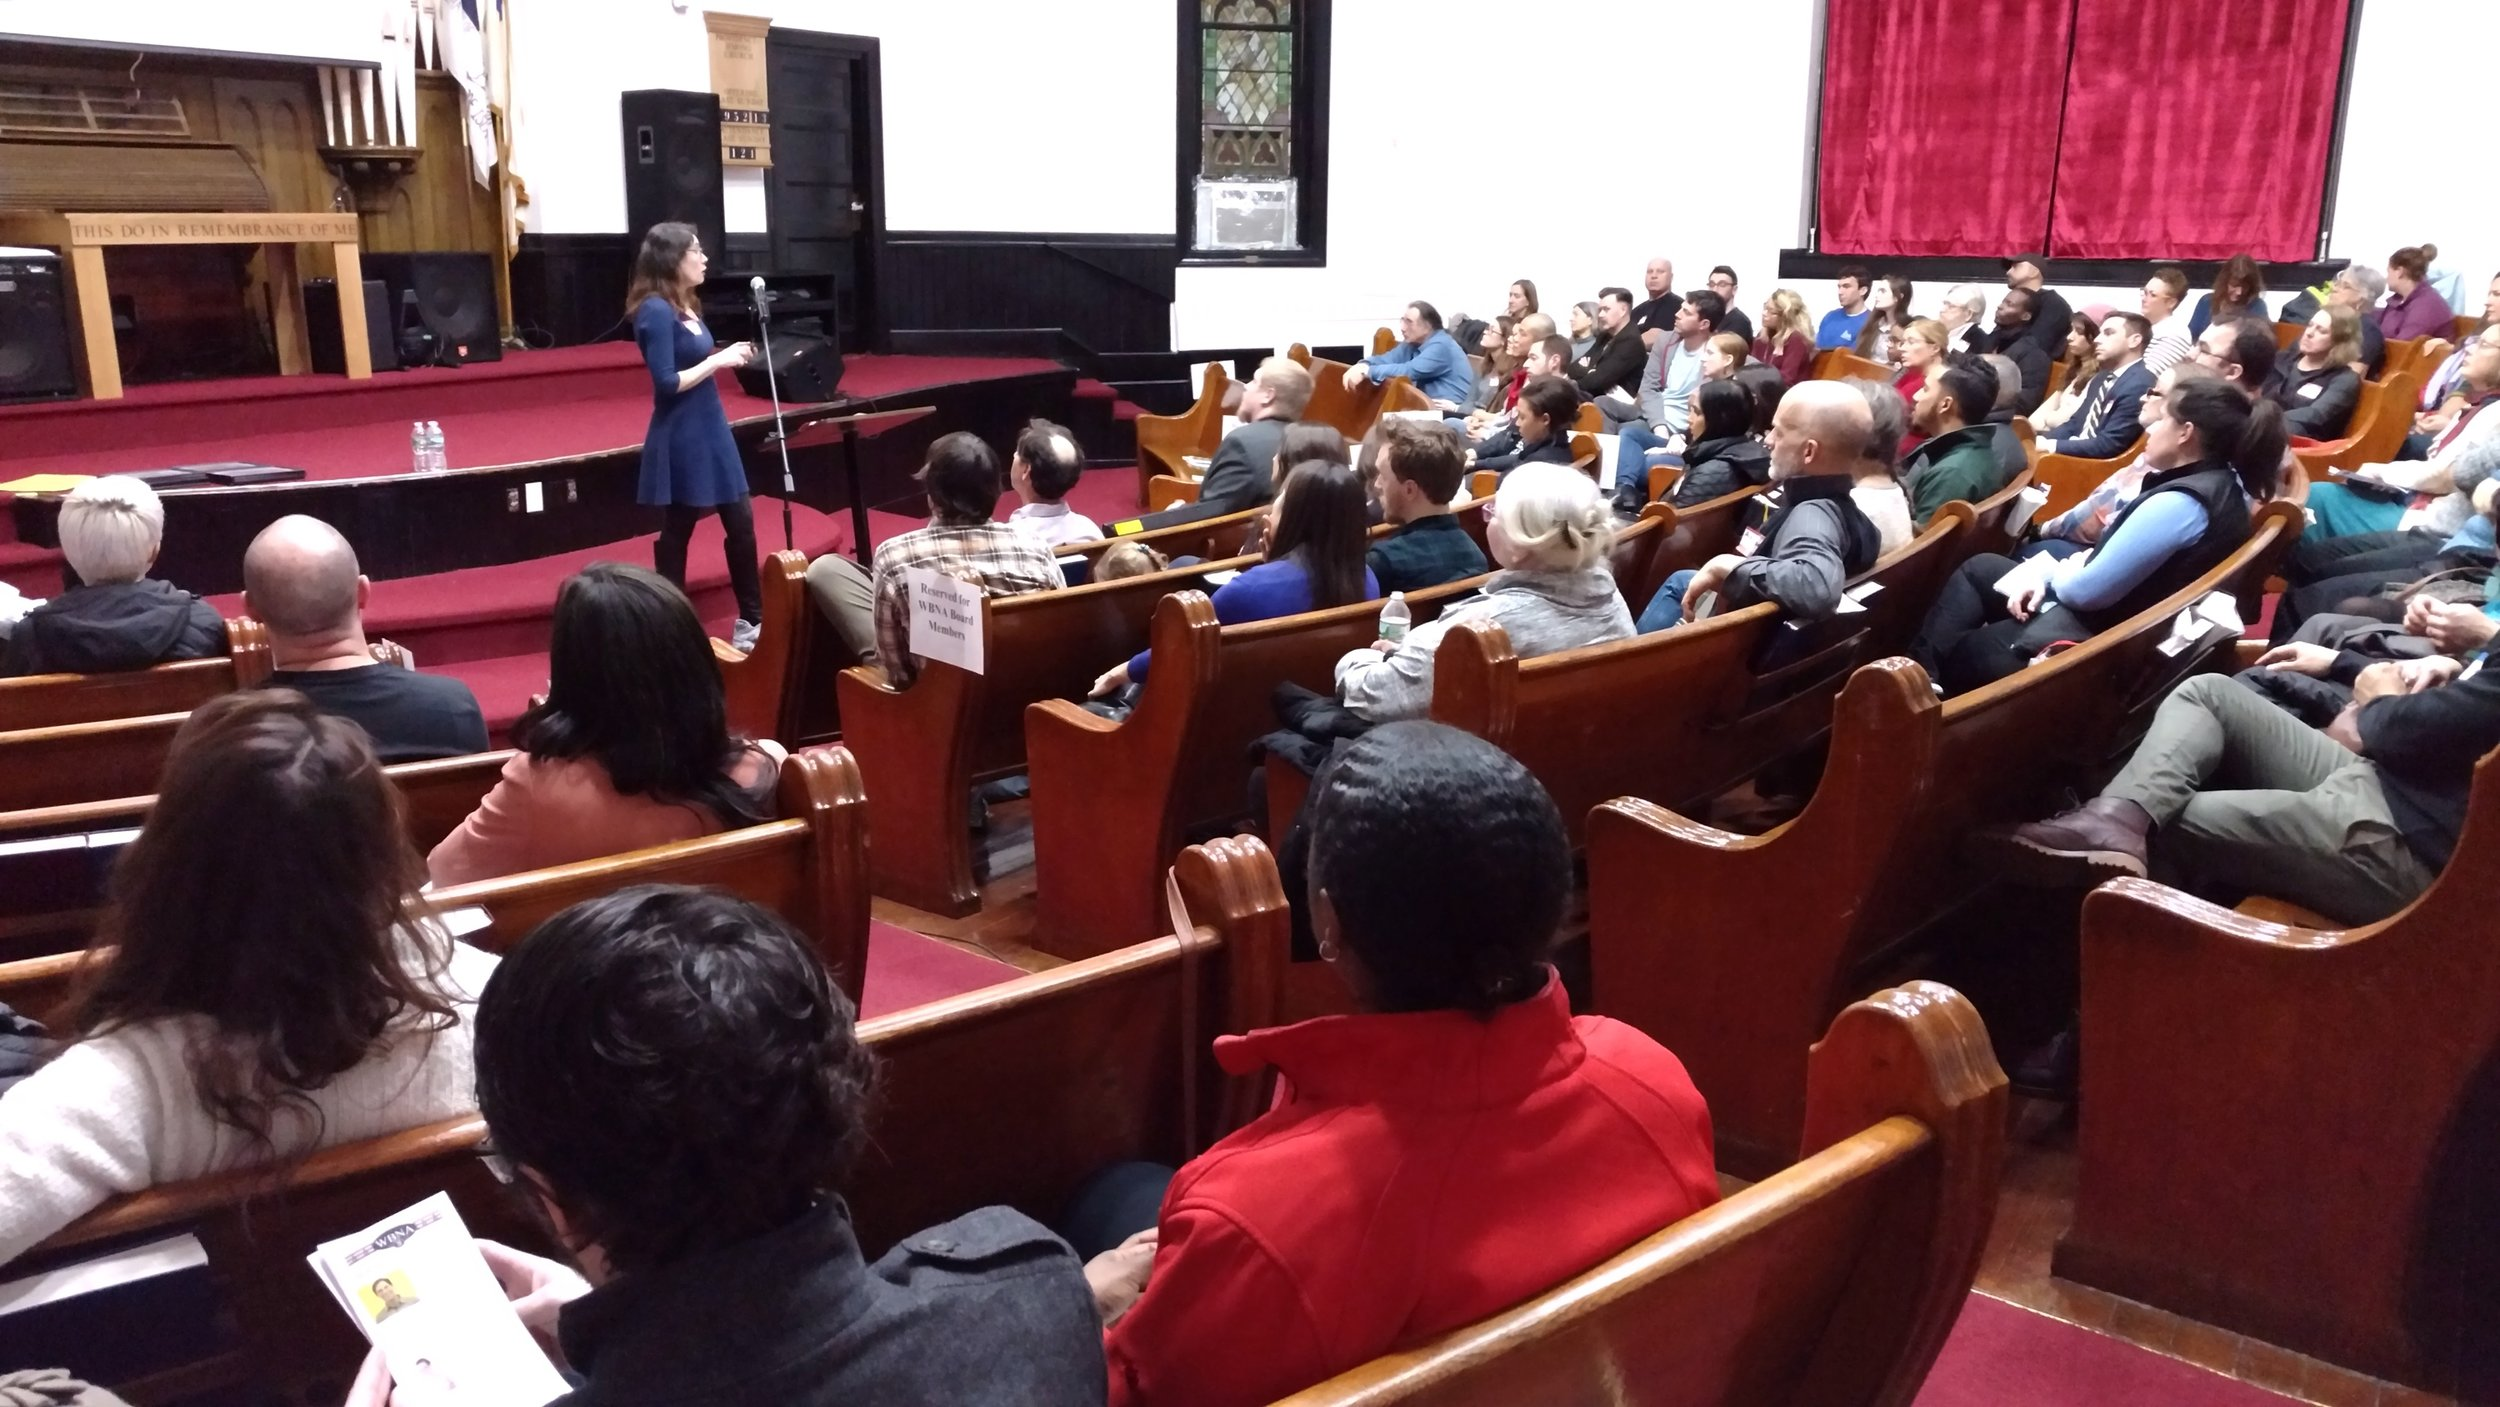 Over 200 neighbors came together for our 2018 Annual Meeting at the Providence Hmong Church